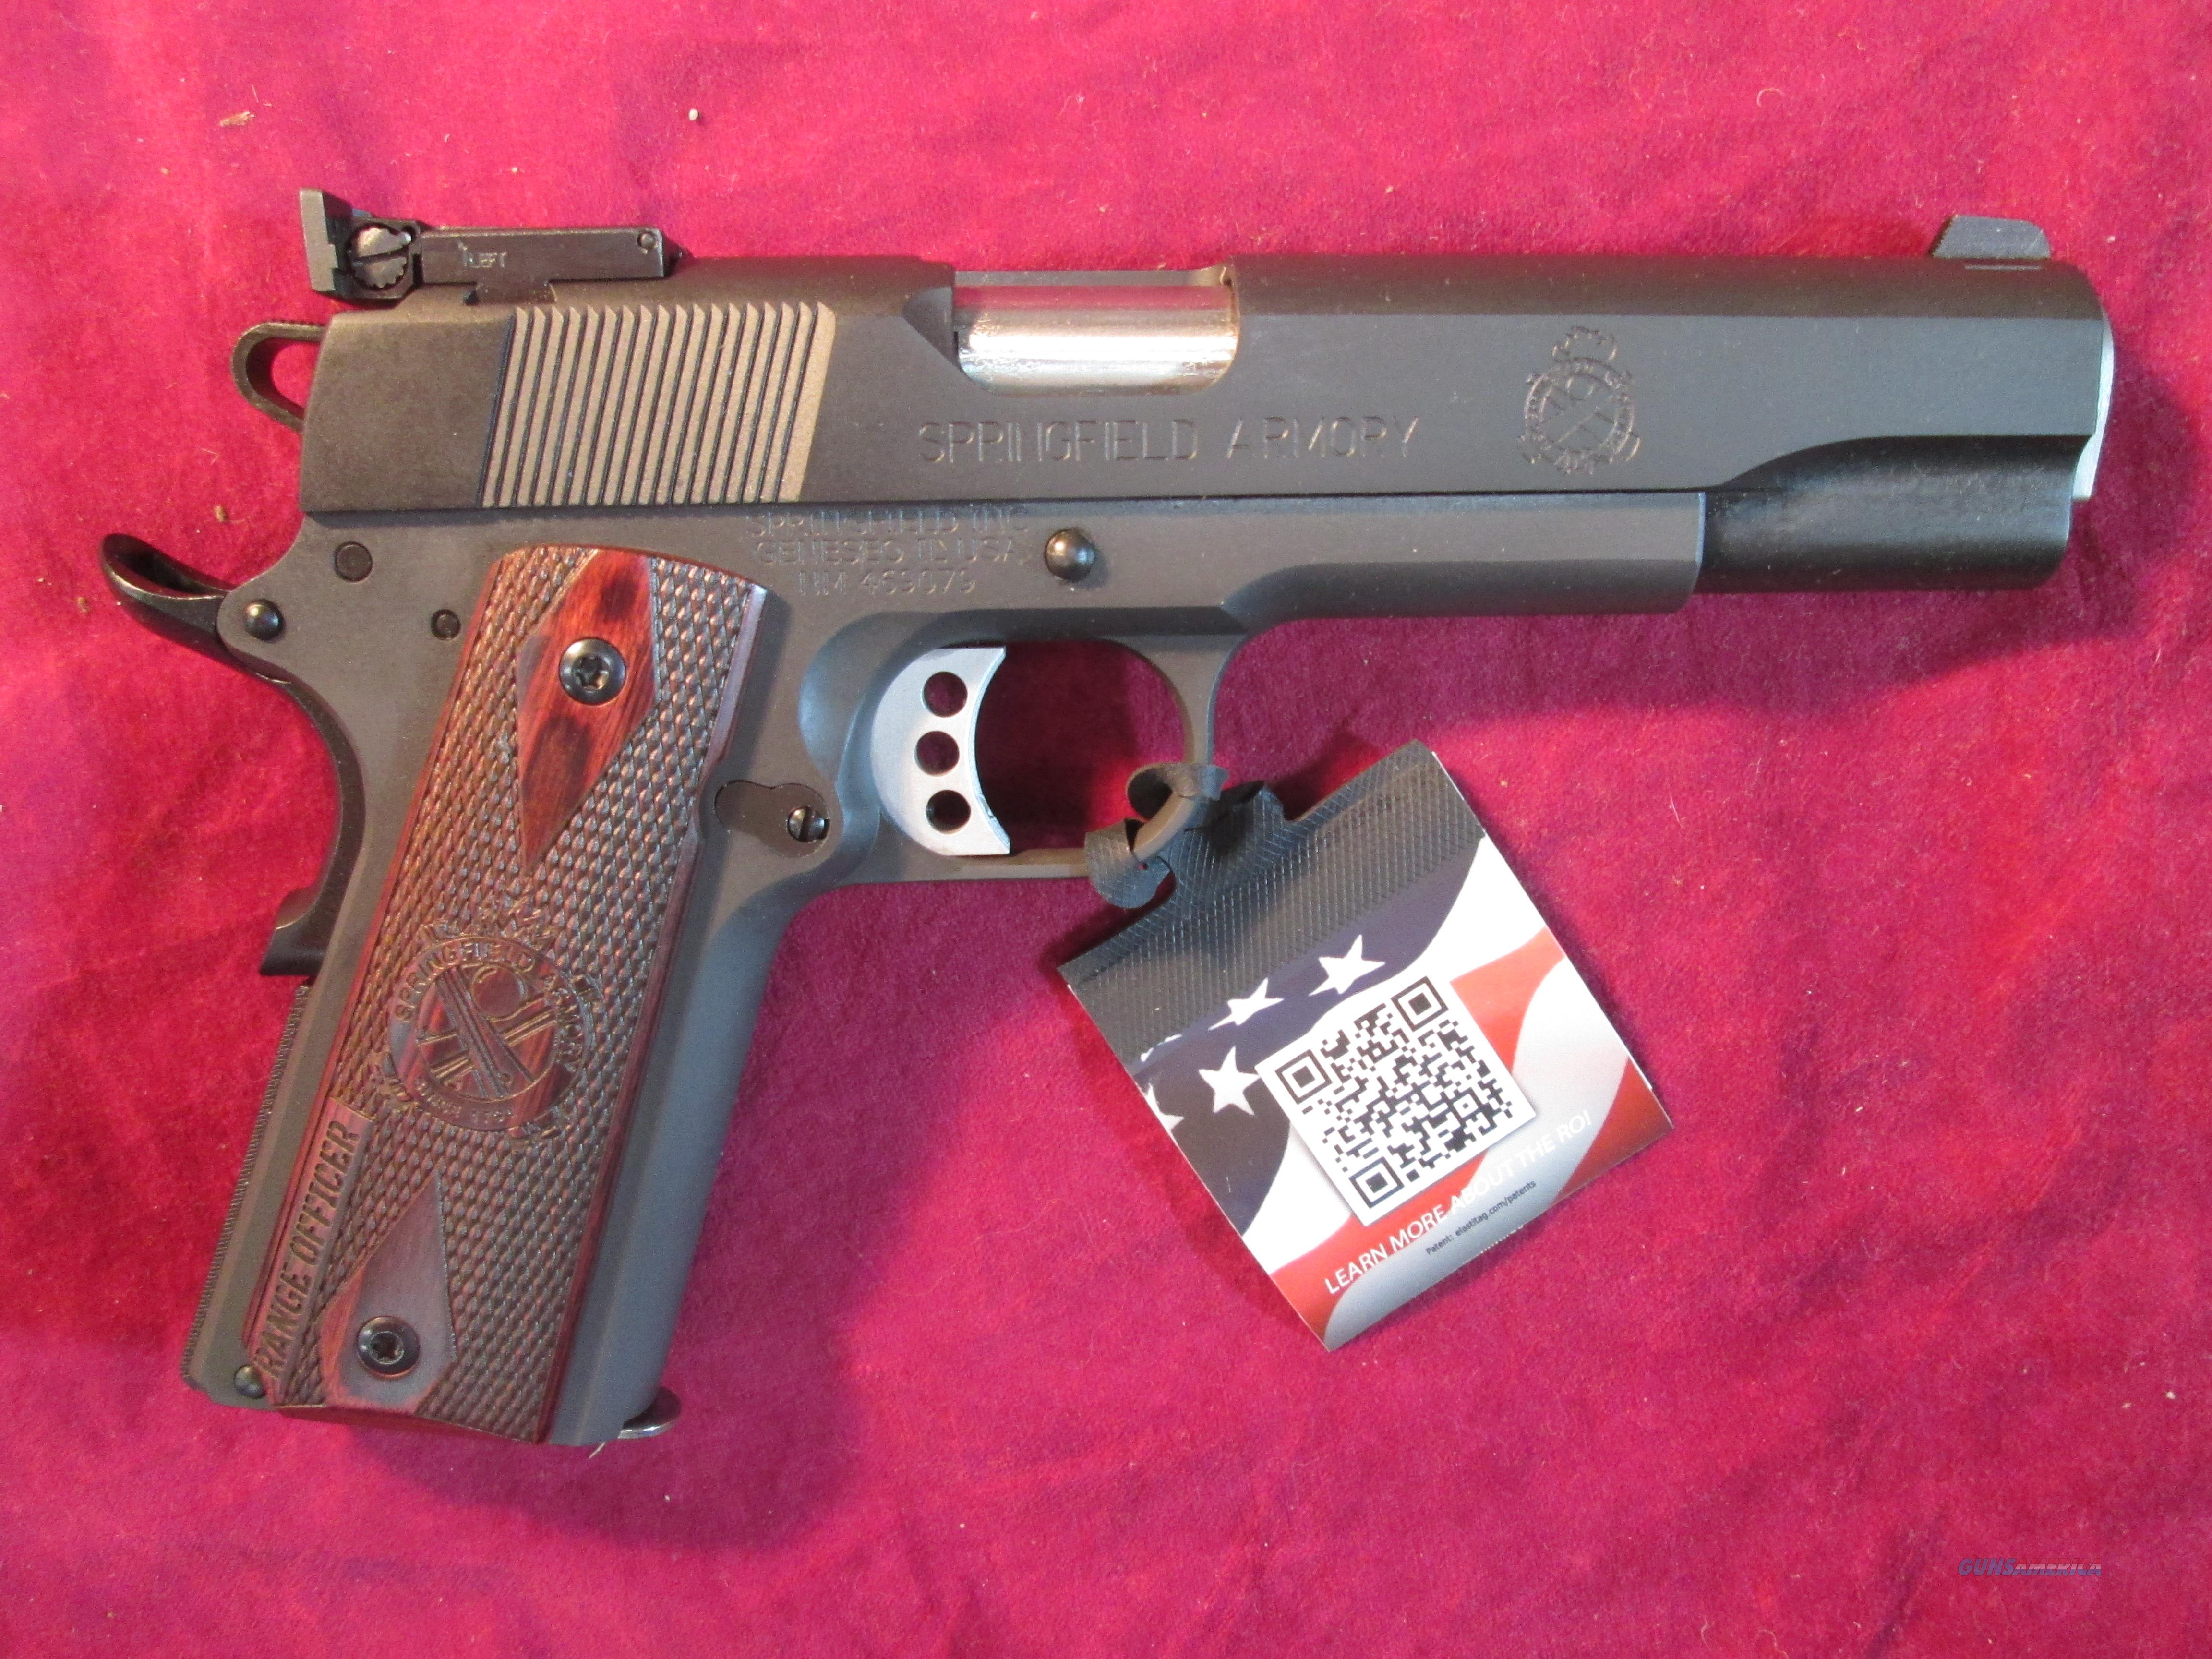 SPRINGFIELD ARMORY 1911 RANGE OFFICER 9MM PARKERIZED W/ TARGET SIGHTS NEW (PI9129L)  Guns > Pistols > Springfield Armory Pistols > 1911 Type